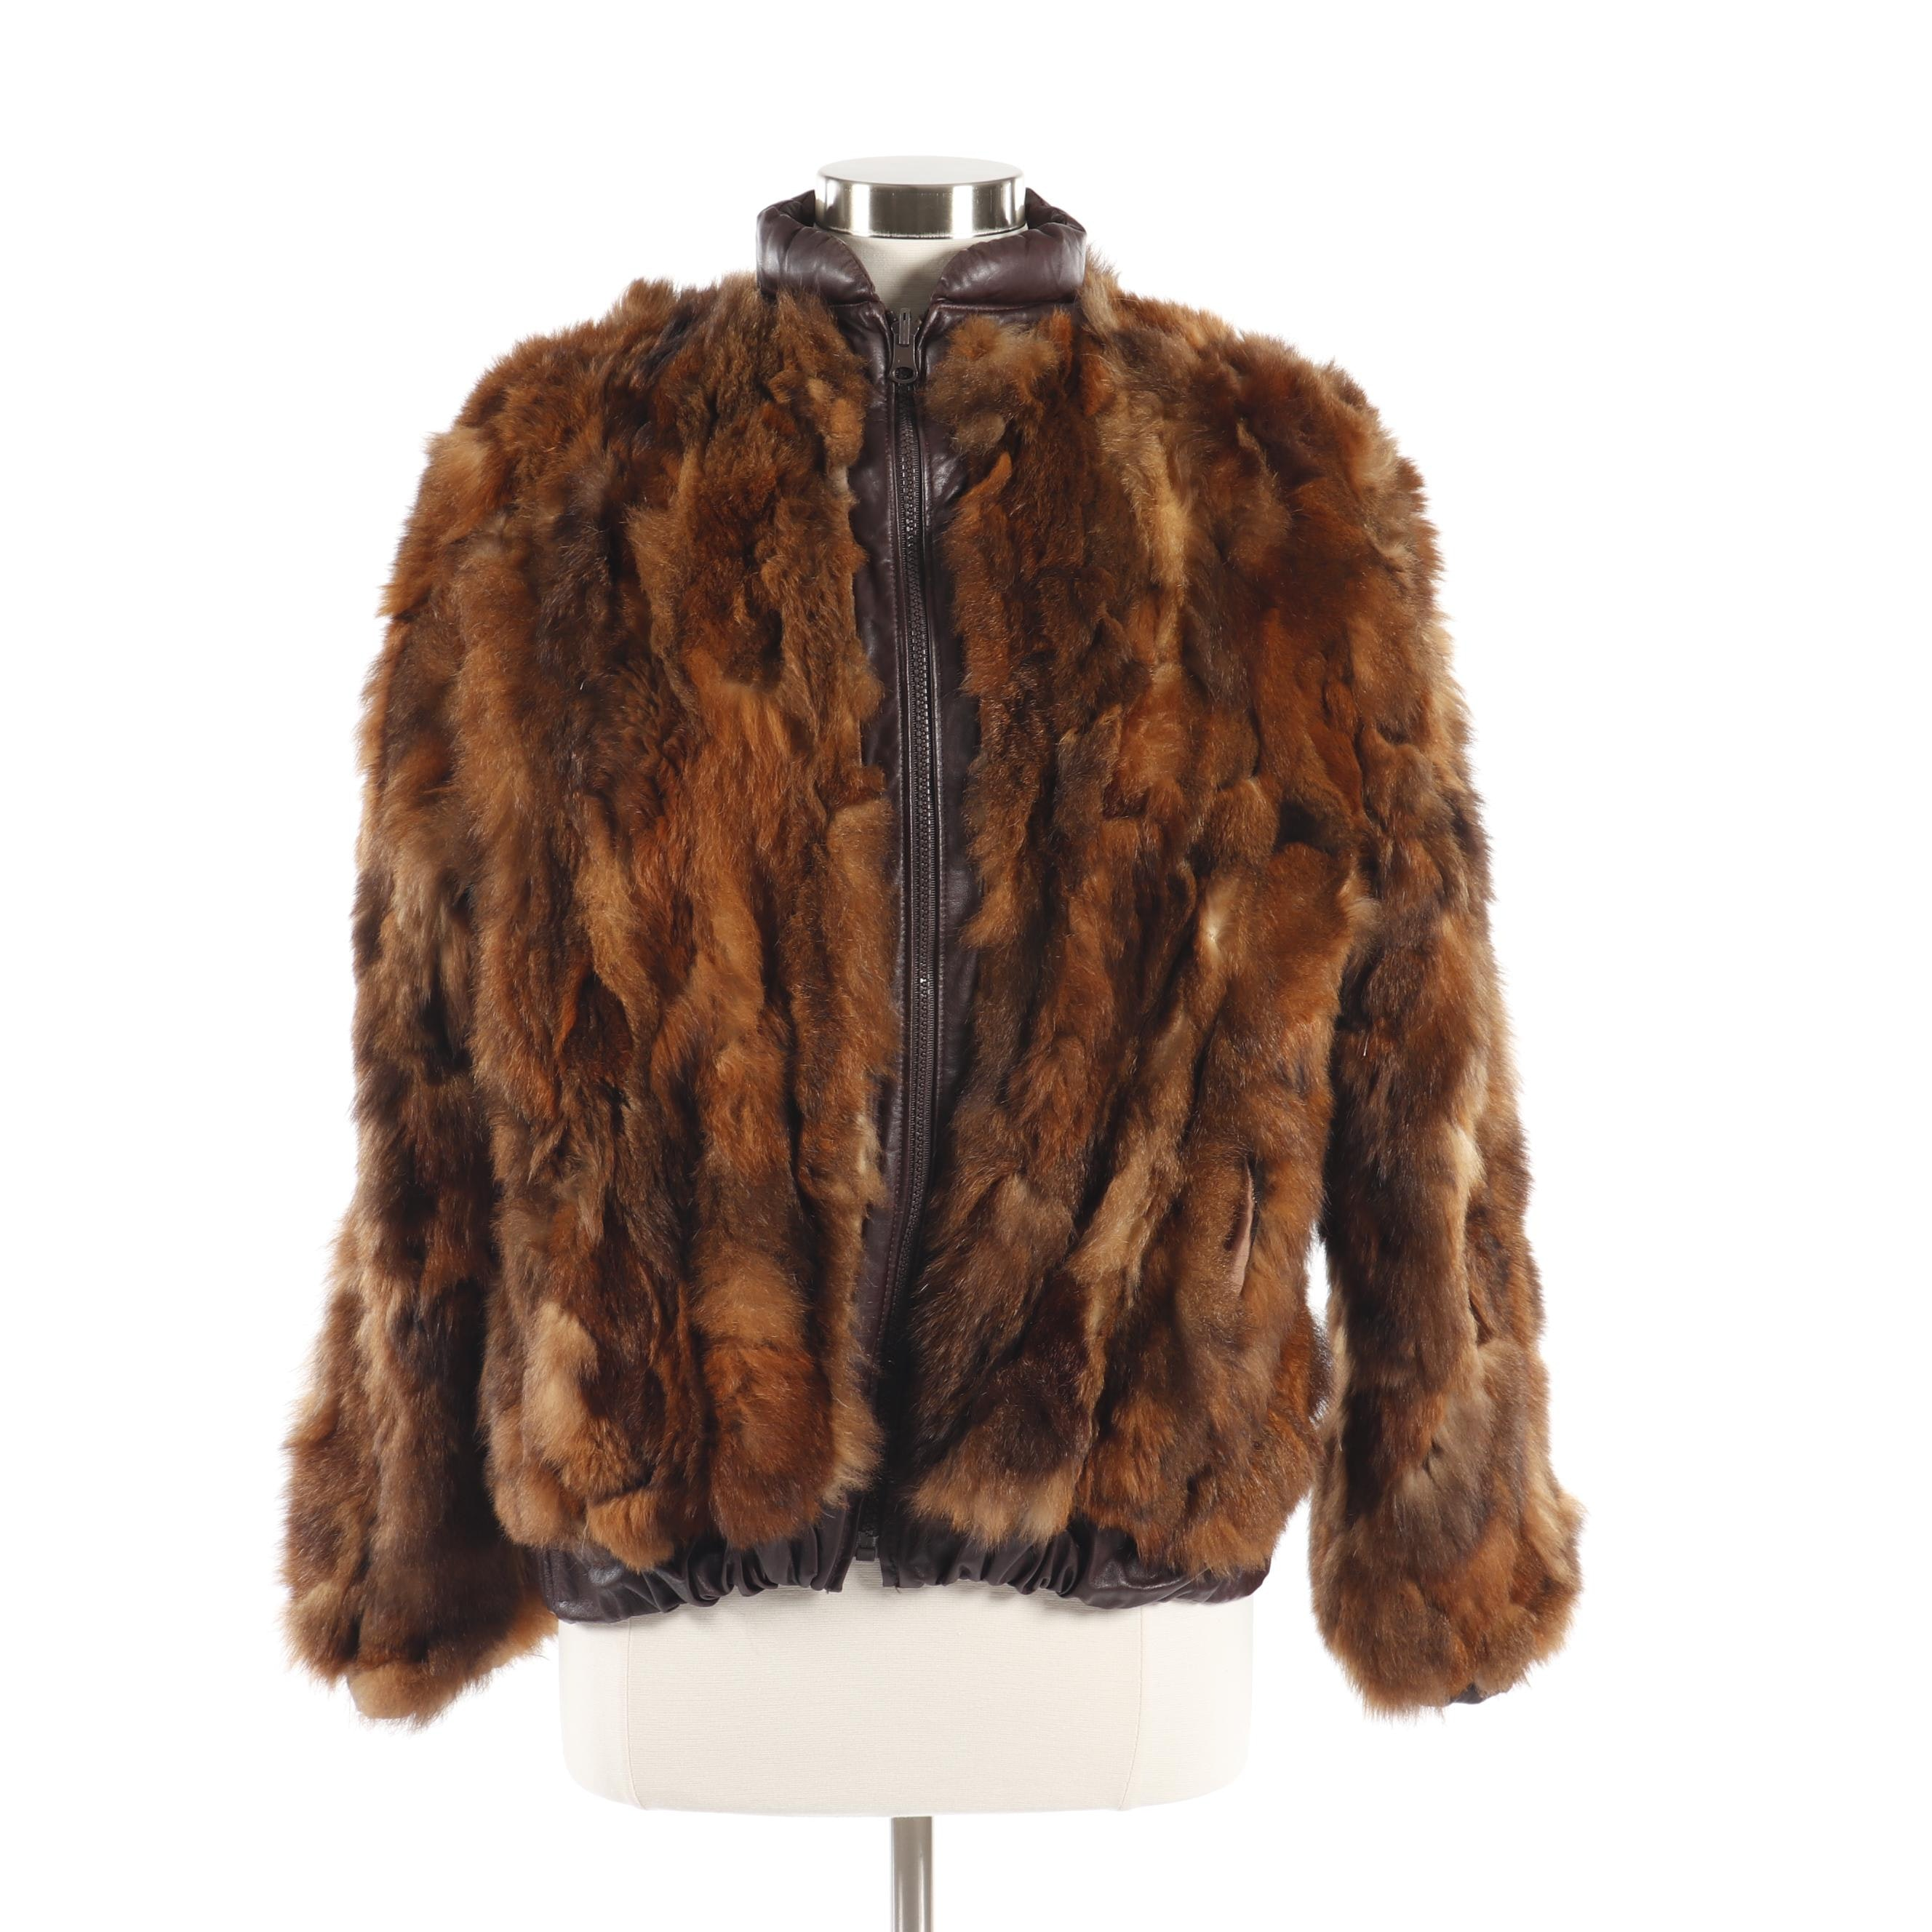 Women's Vintage Reversible Brown Rabbit Fur Jacket with Leather Trim